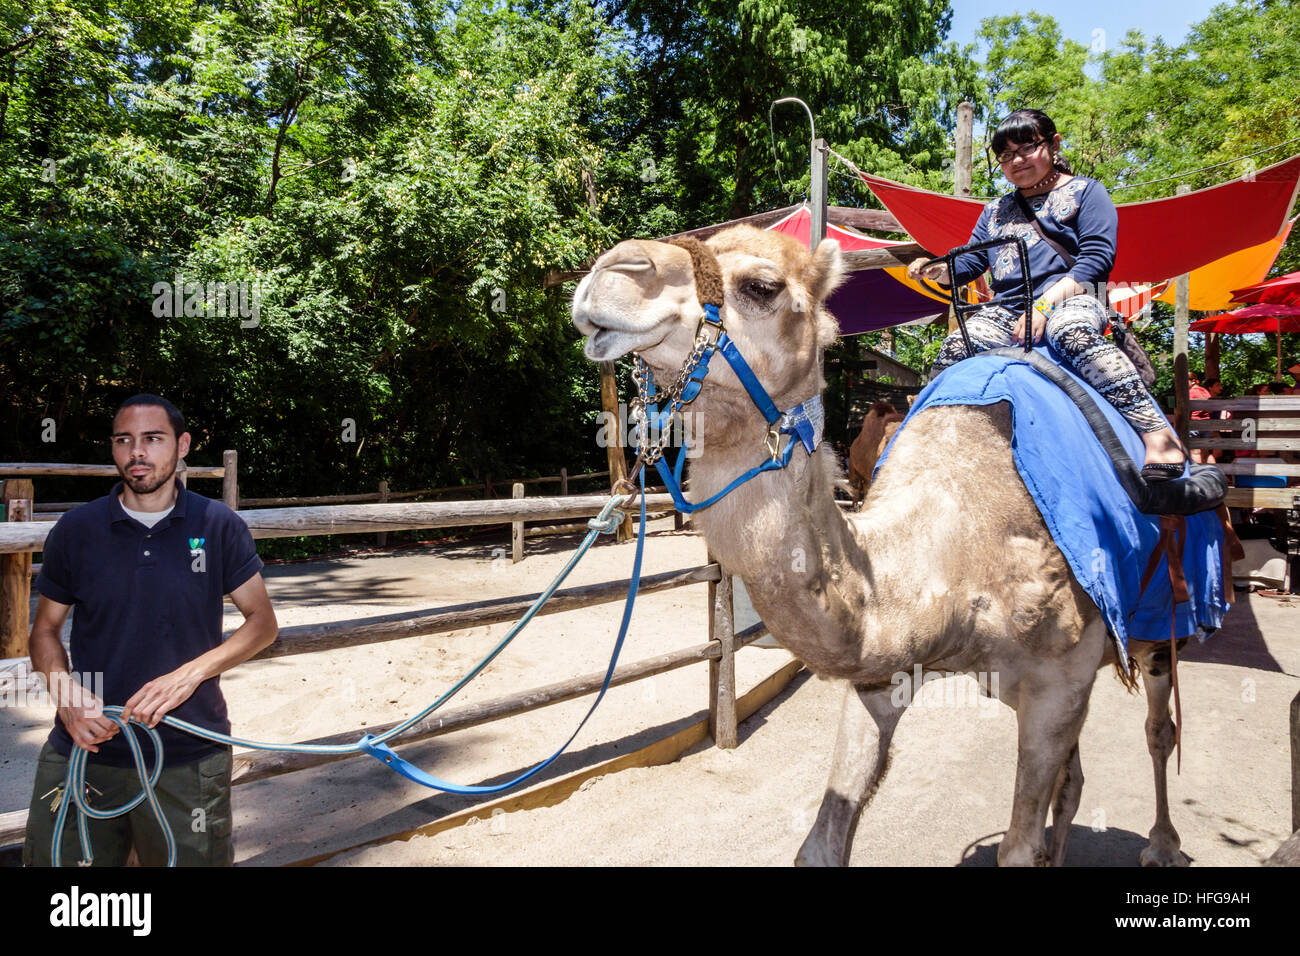 New York New York City Nyc Bronx Bronx Zoo Camel Animal Ride Riding